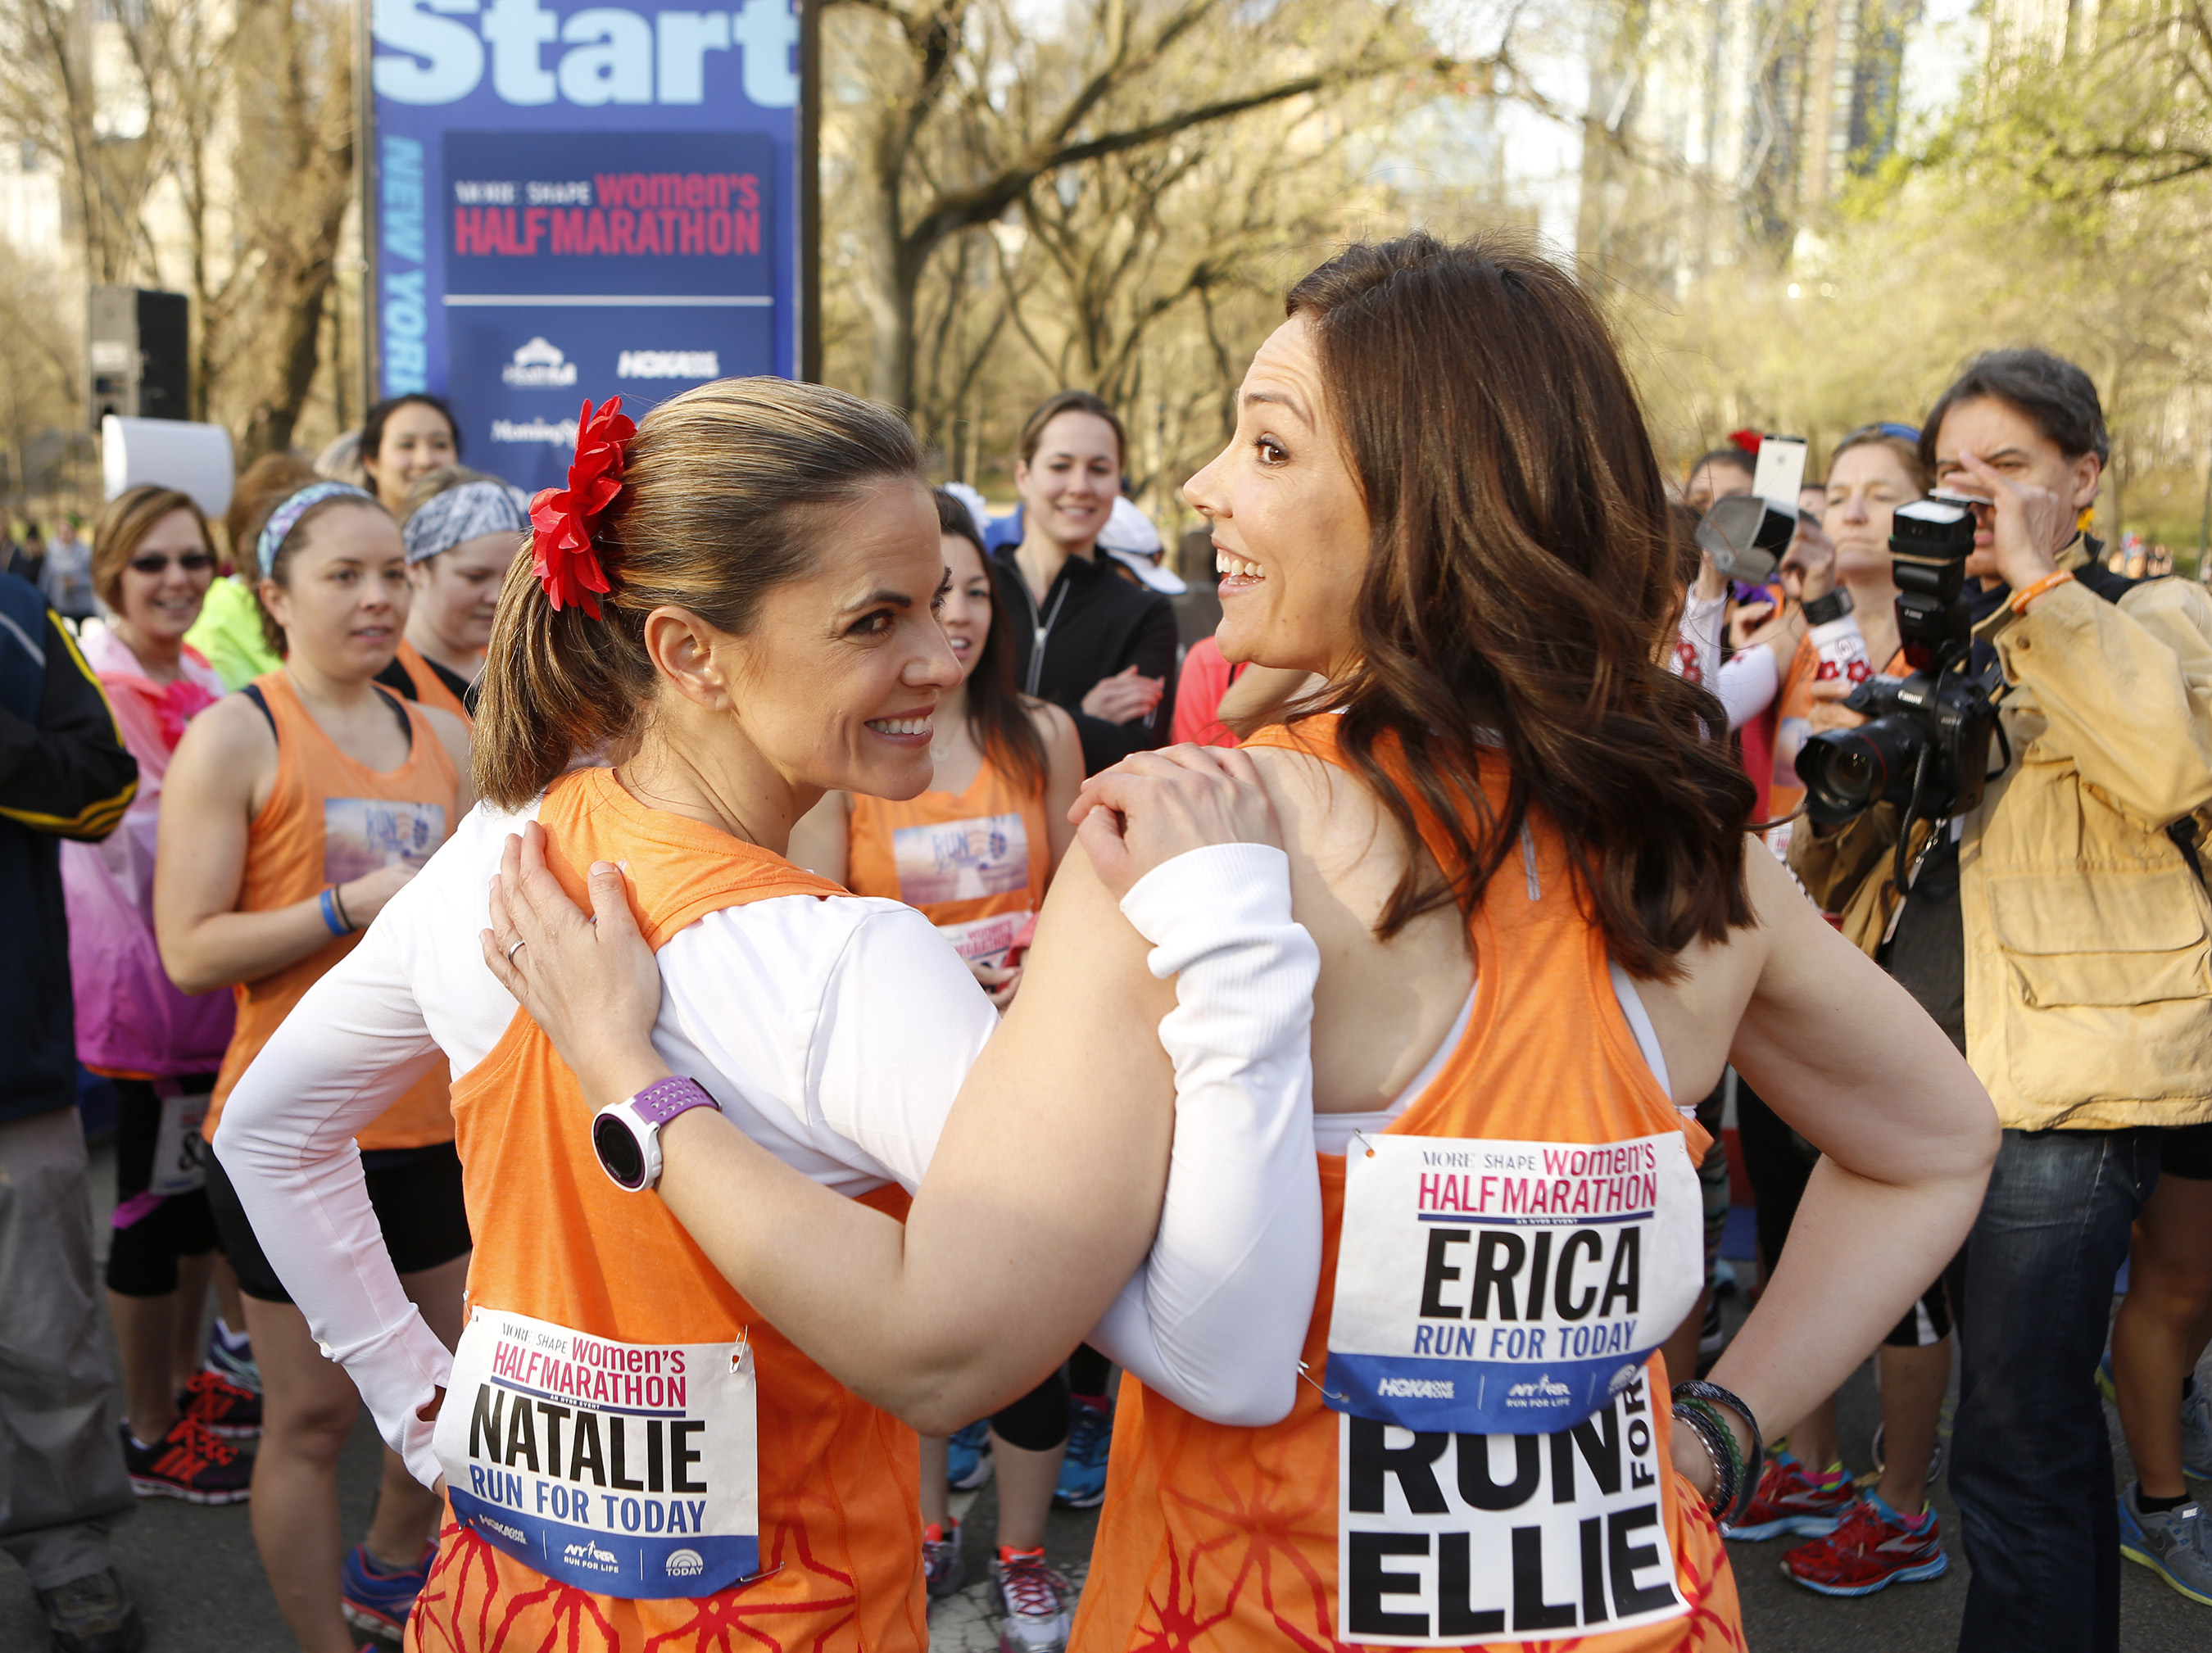 """Natalie Morales of NBC's TODAY, and Erica Hill of NBC News support """"Run for TODAY"""" at the 12th Annual MORE/SHAPE Women's Half-Marathon in New York's Central Park on April 19, 2015."""